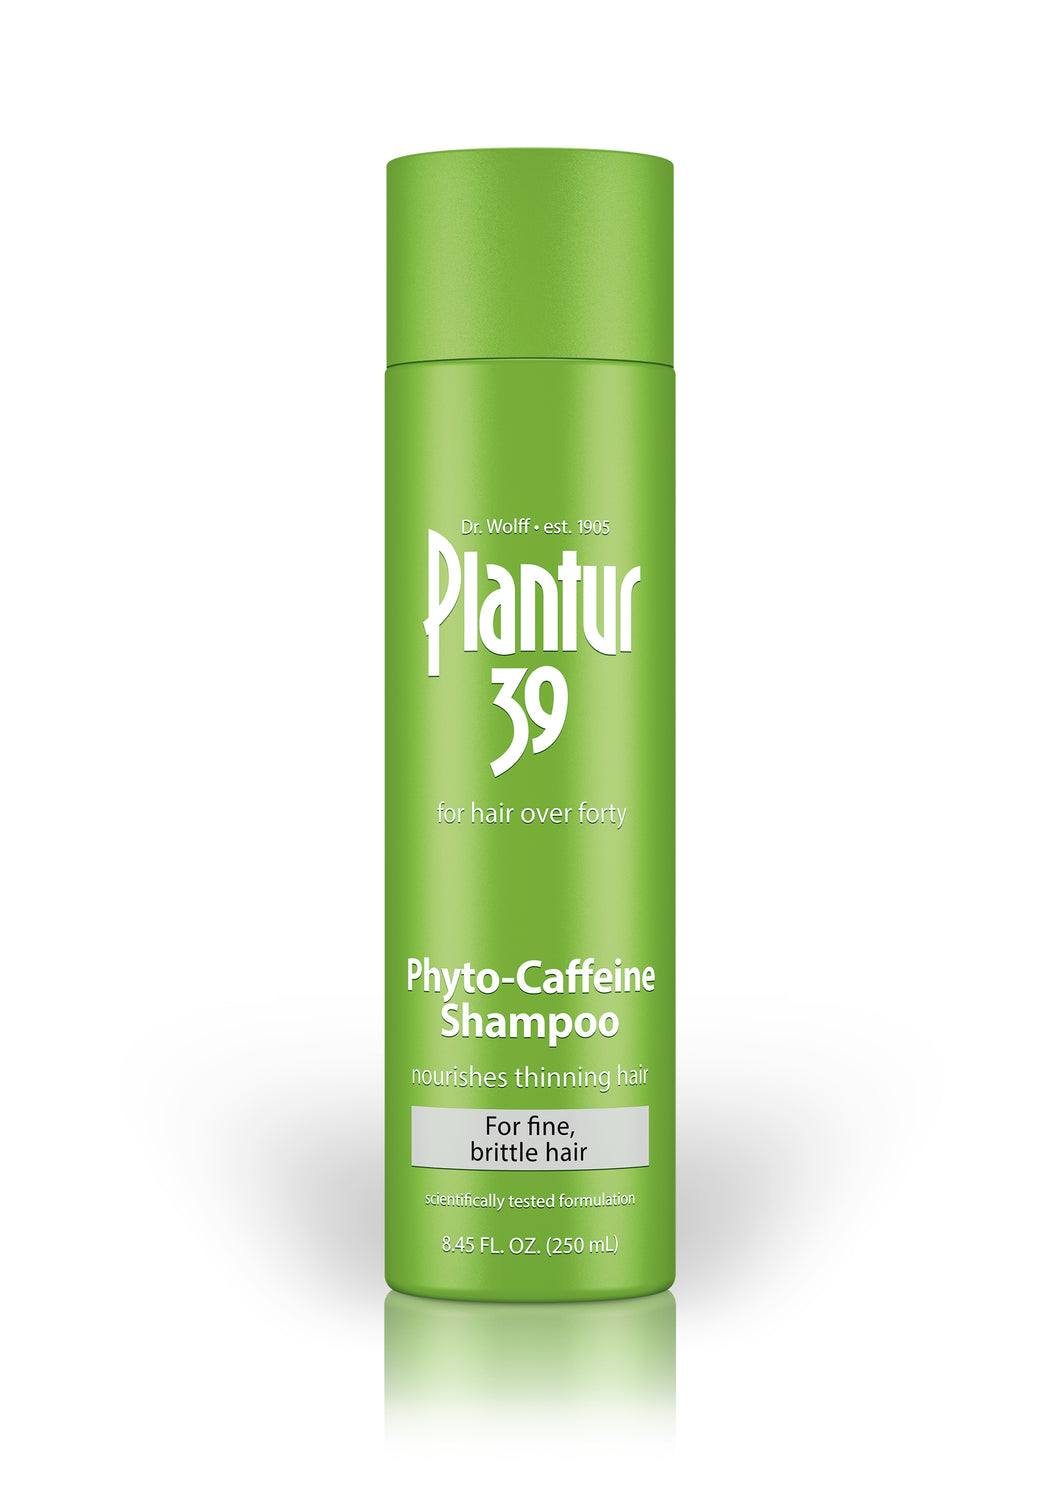 Front of shampoo bottle. Green bottle with white writing. Plantur 39 Phyto-Caffeine Shampoo for fine, brittle hair.